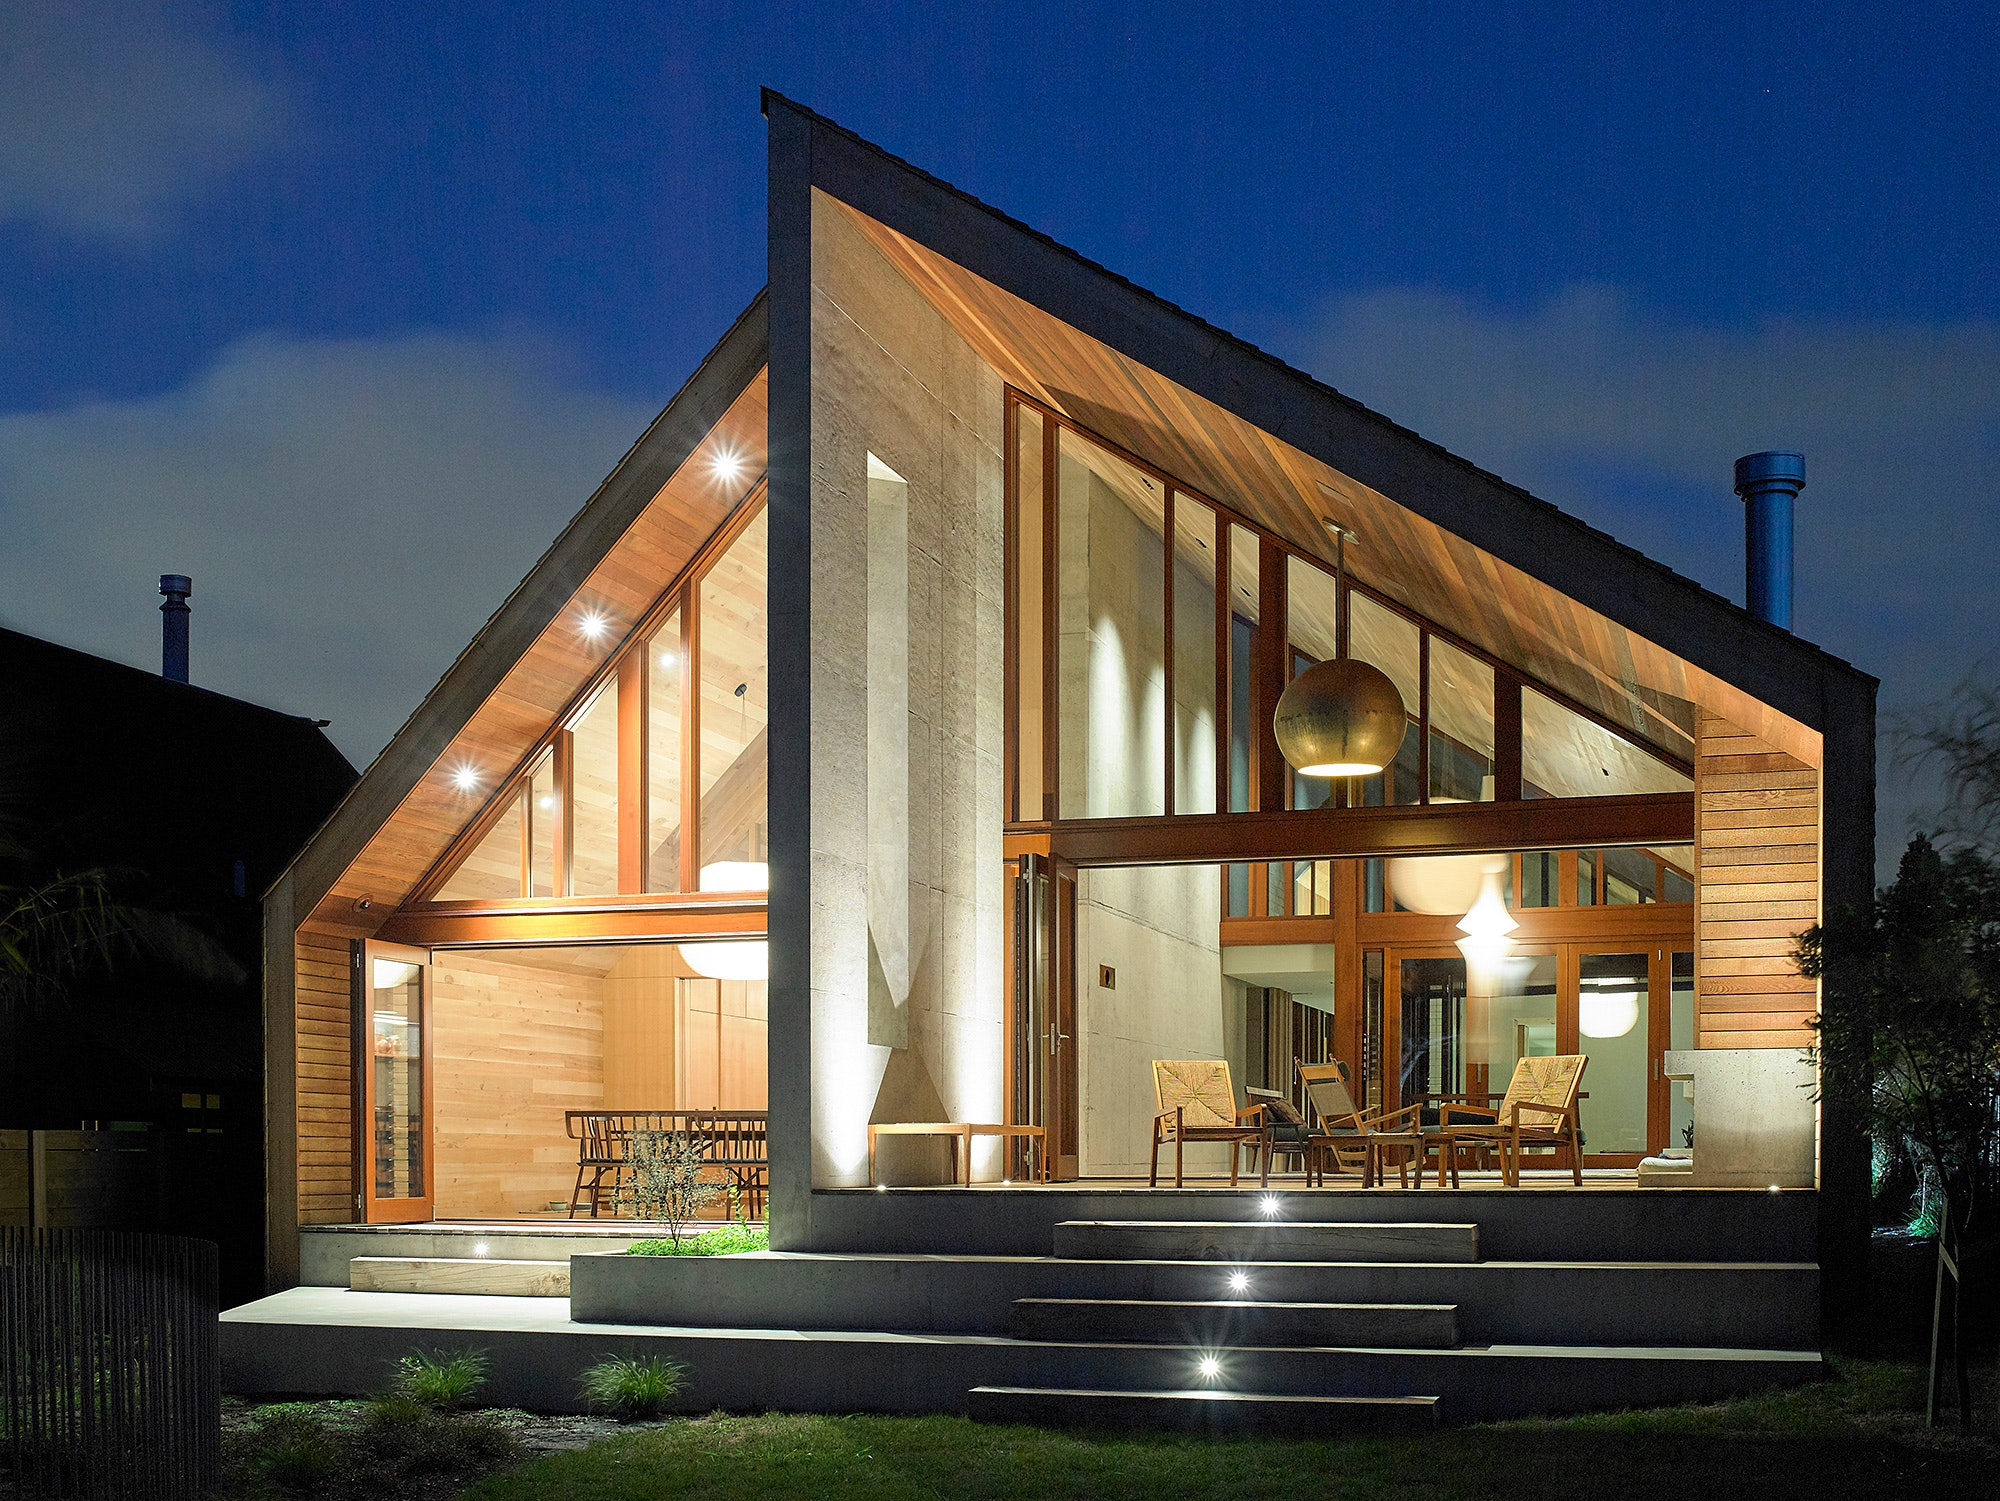 Winners of the 2018 New Zealand Architecture Awards